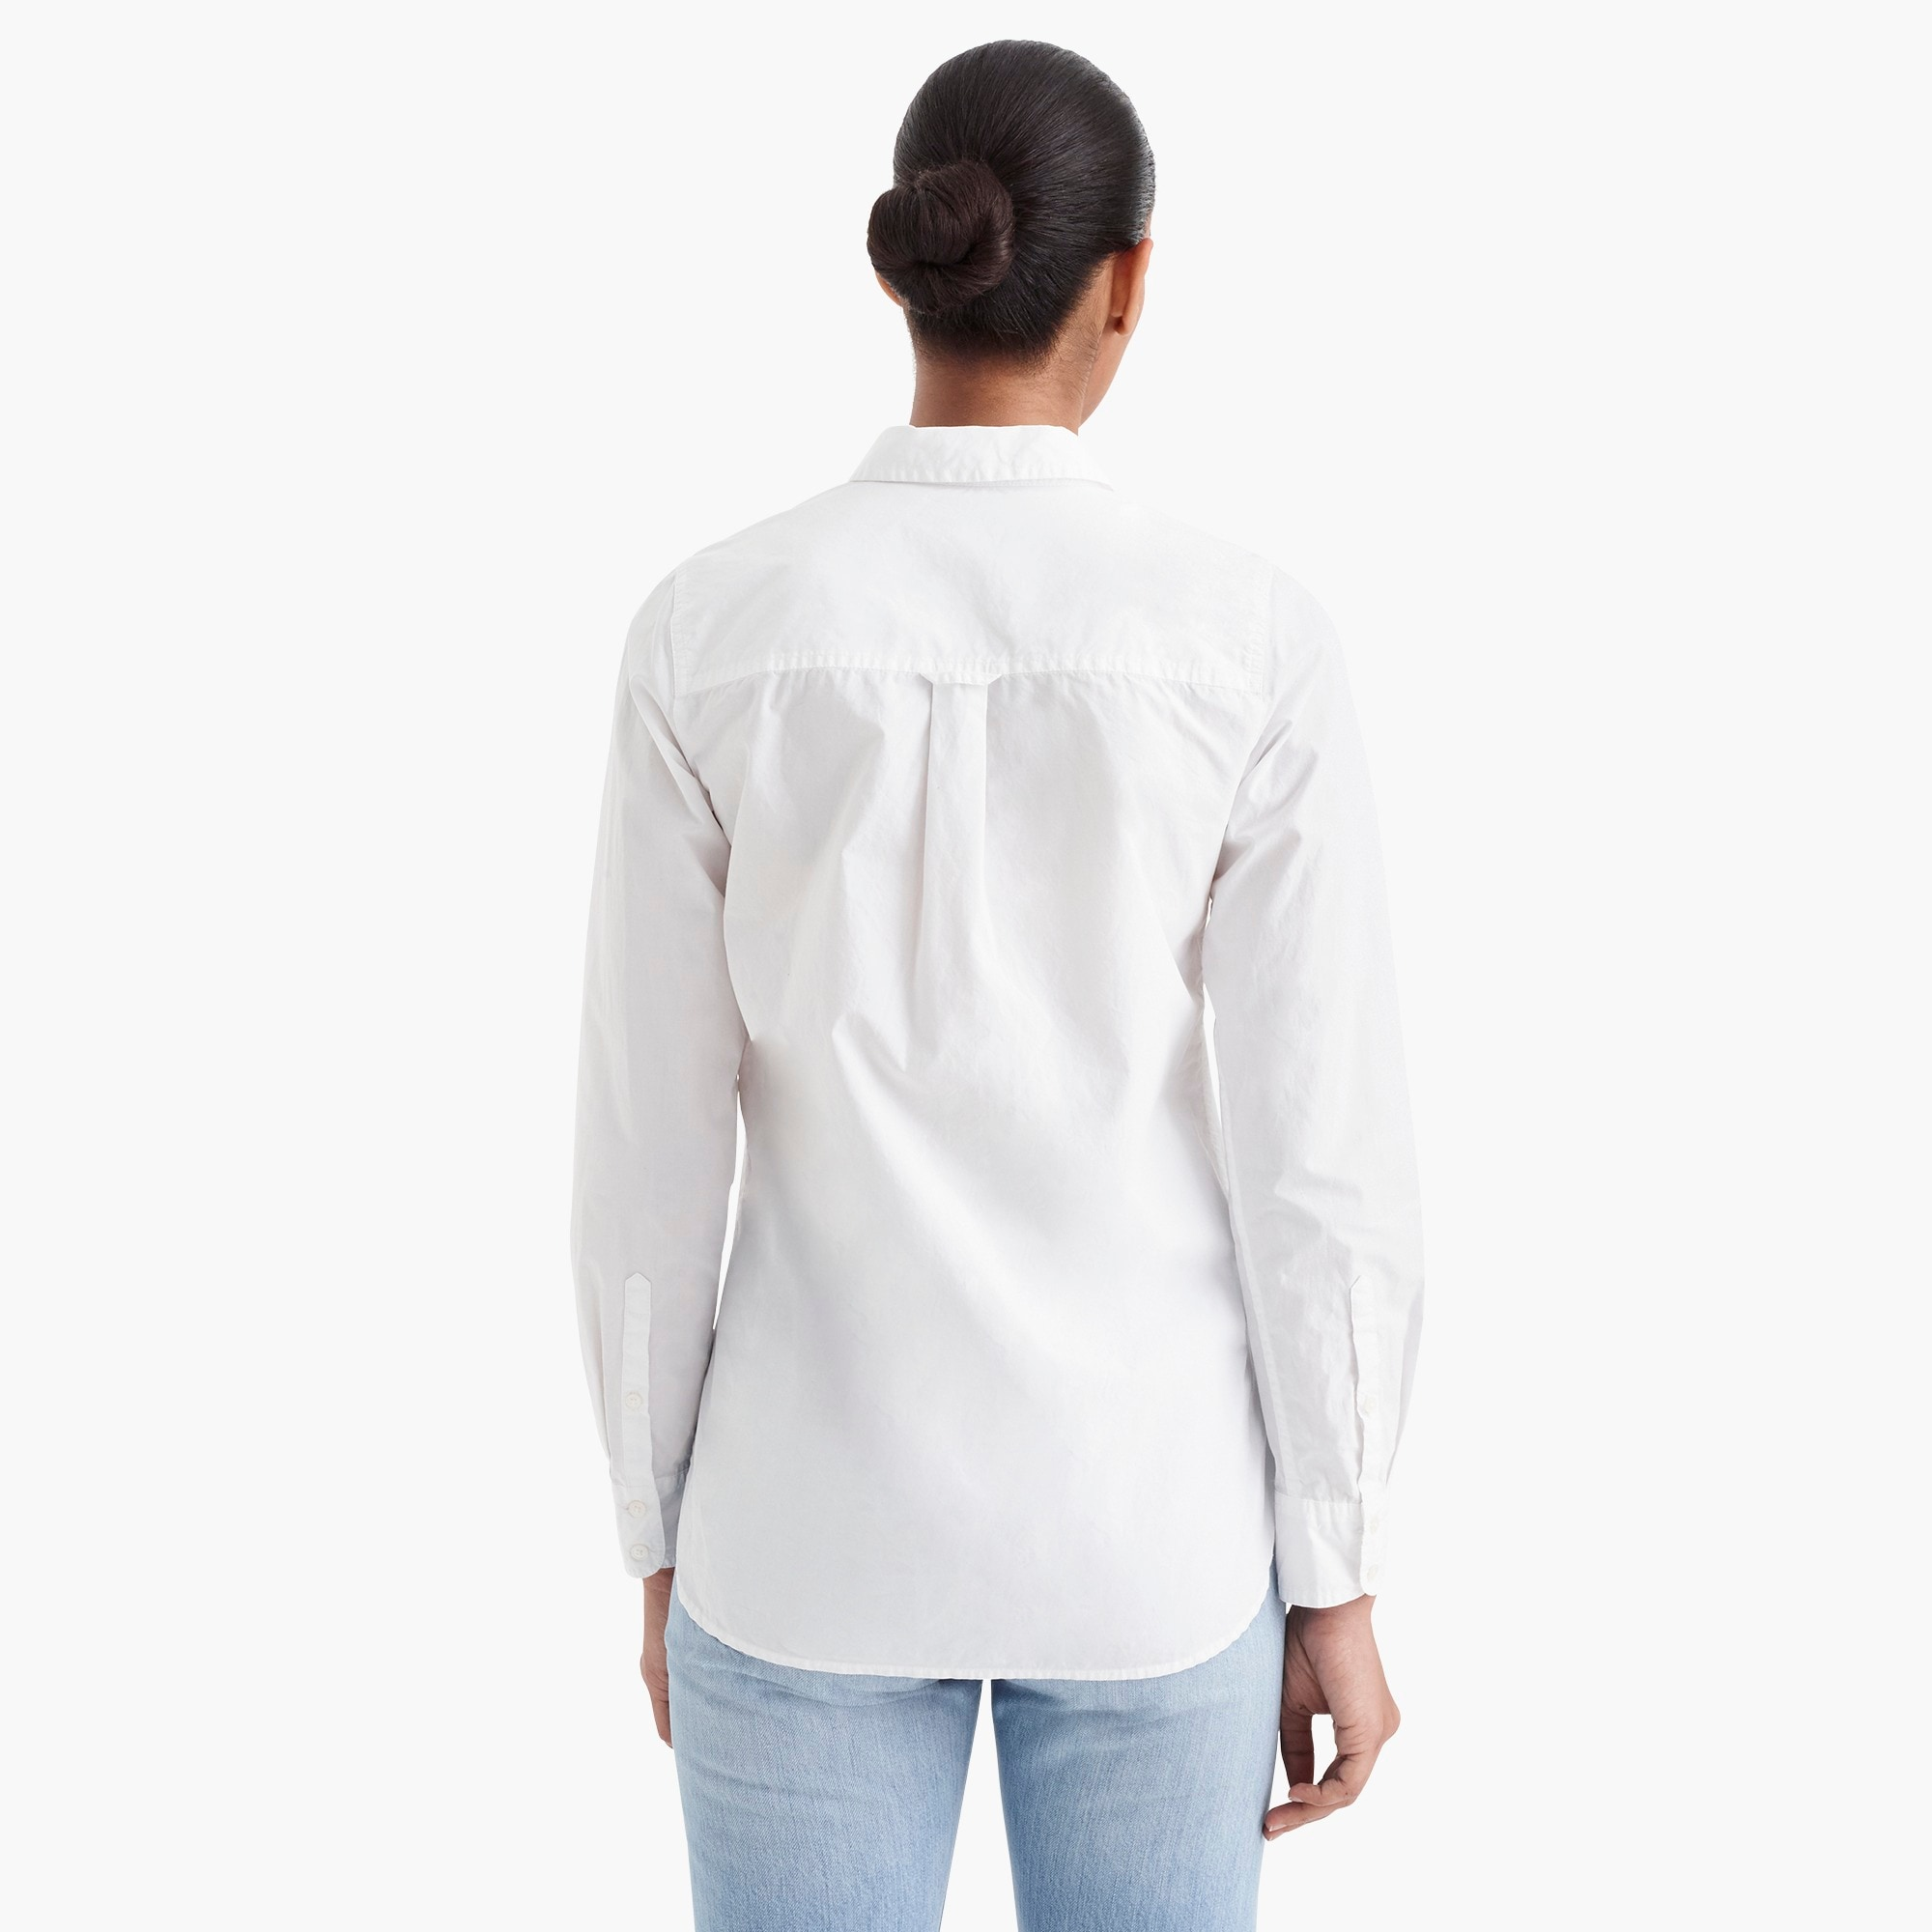 Image 5 for Tall classic-fit boy shirt in cotton poplin